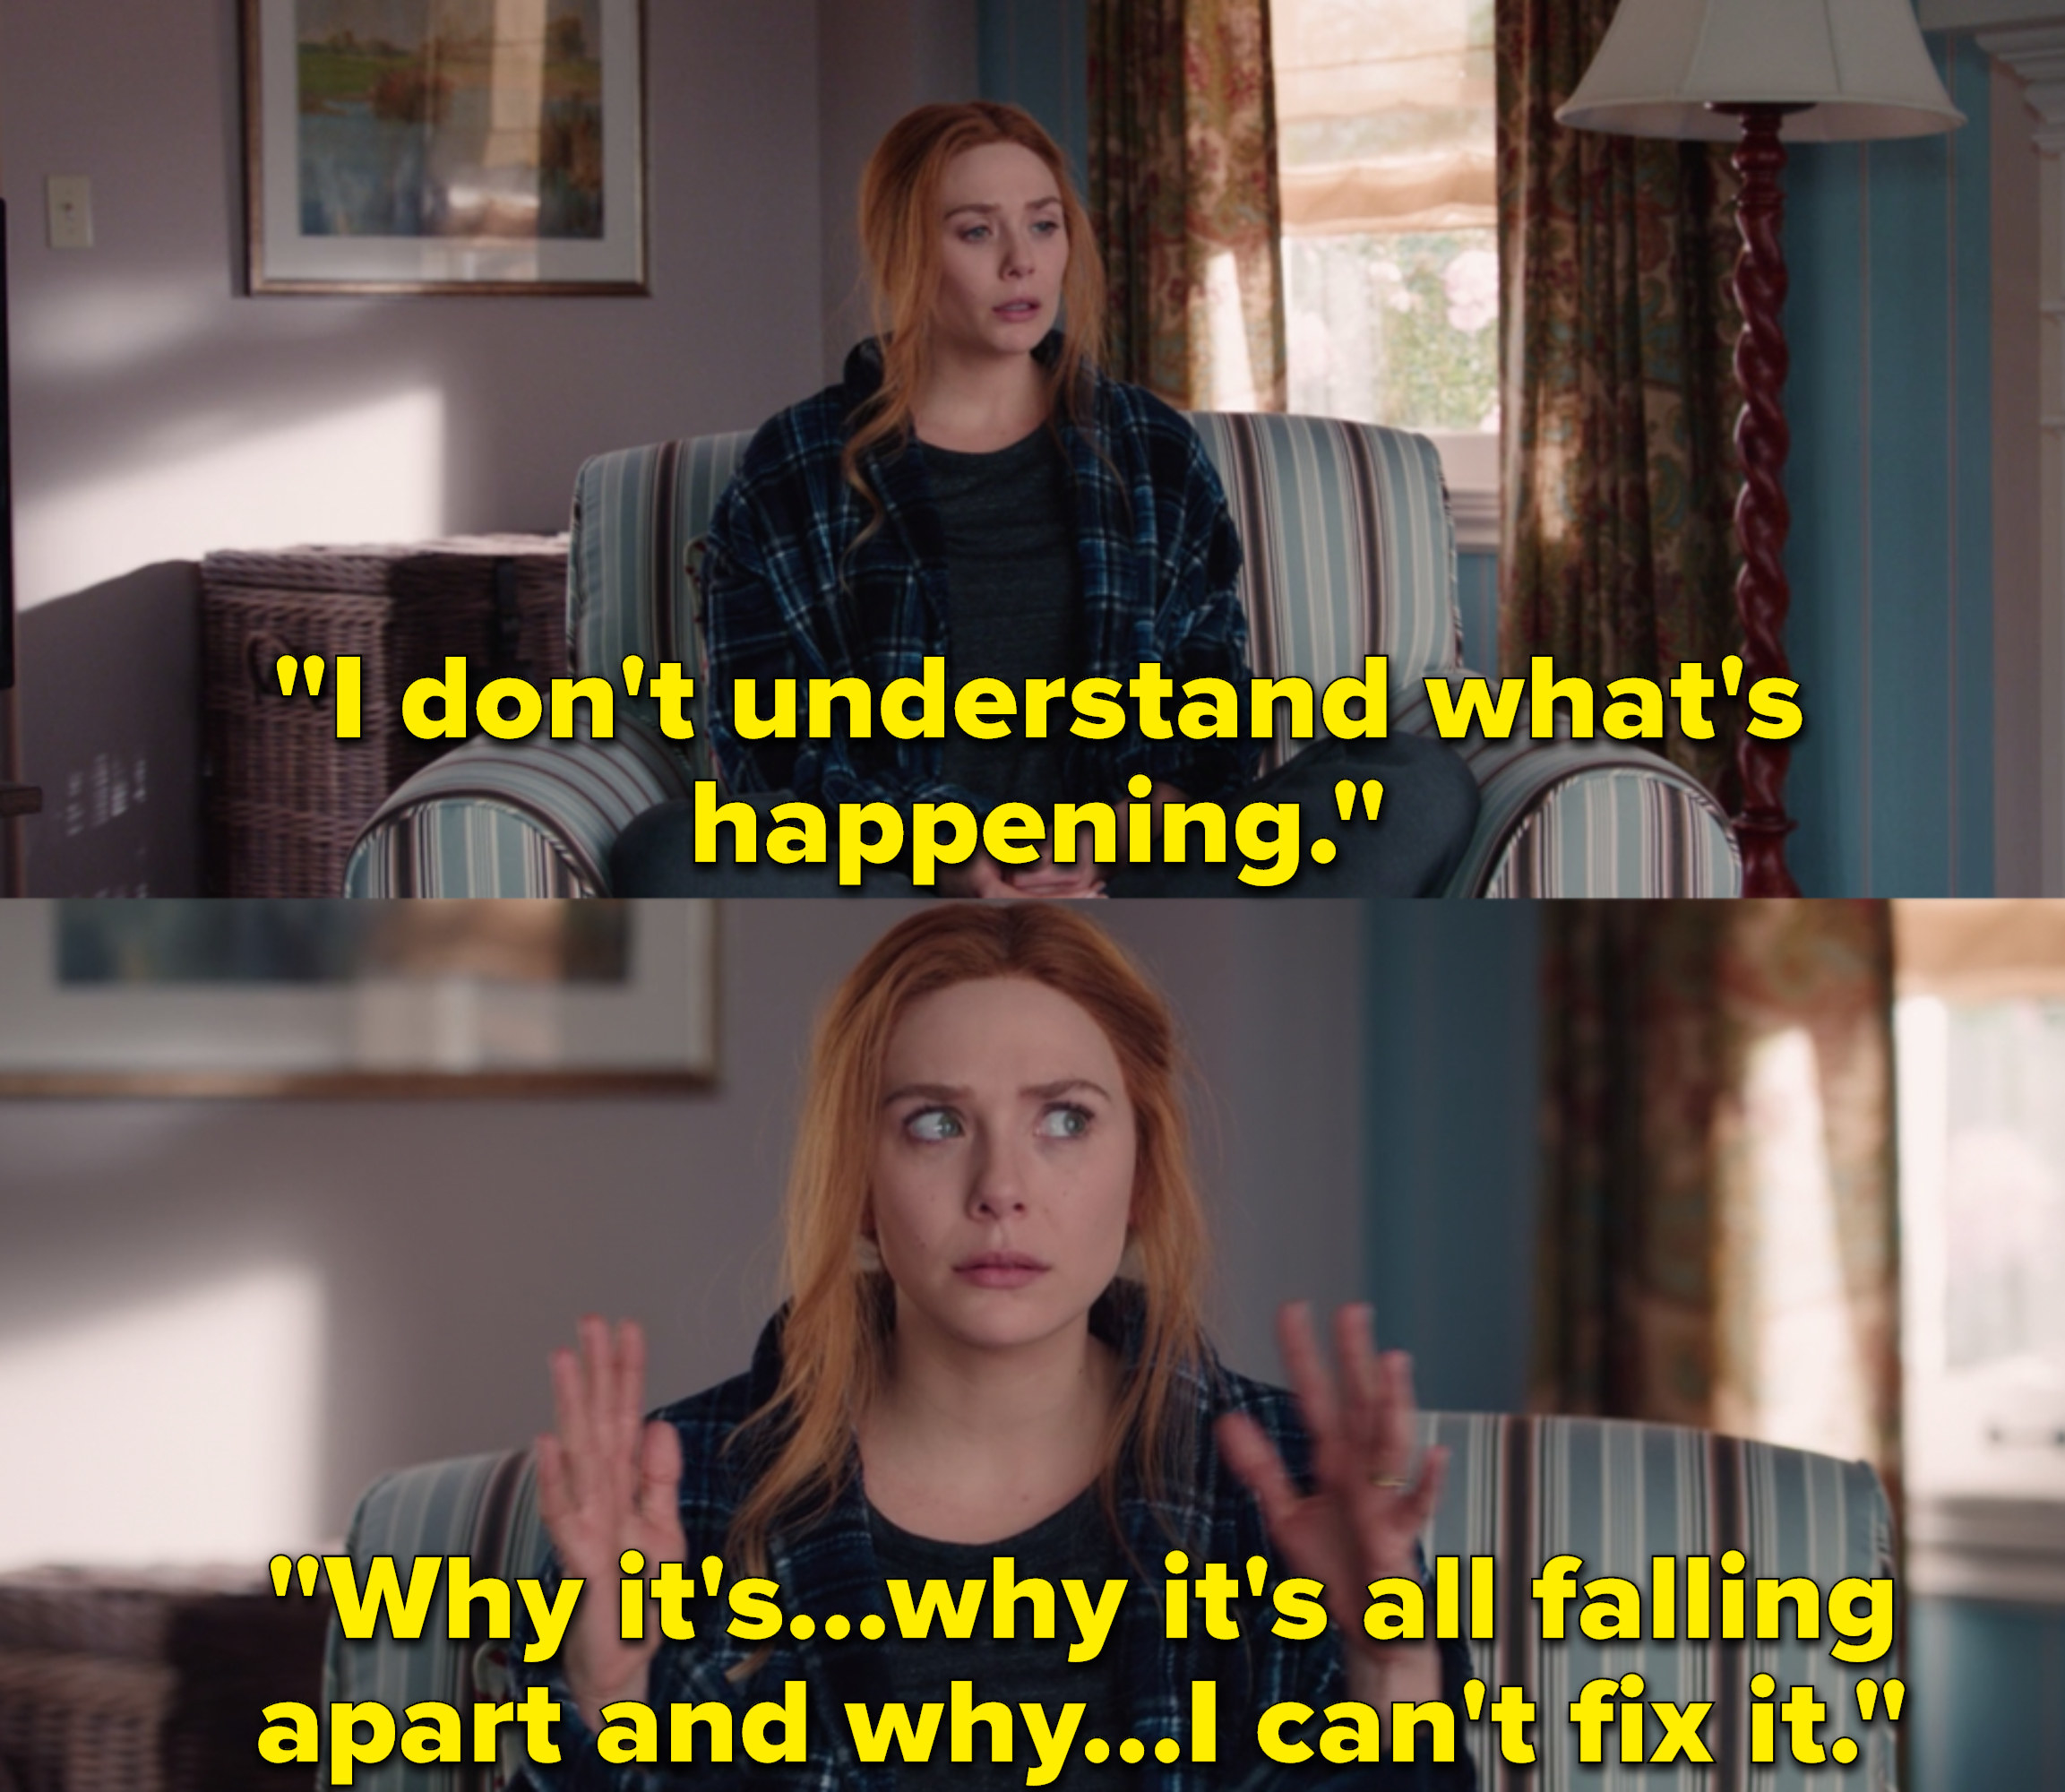 """Wanda says, """"I don't understand what's happening...why it's...why it's all falling apart and why...I can't fix it"""""""